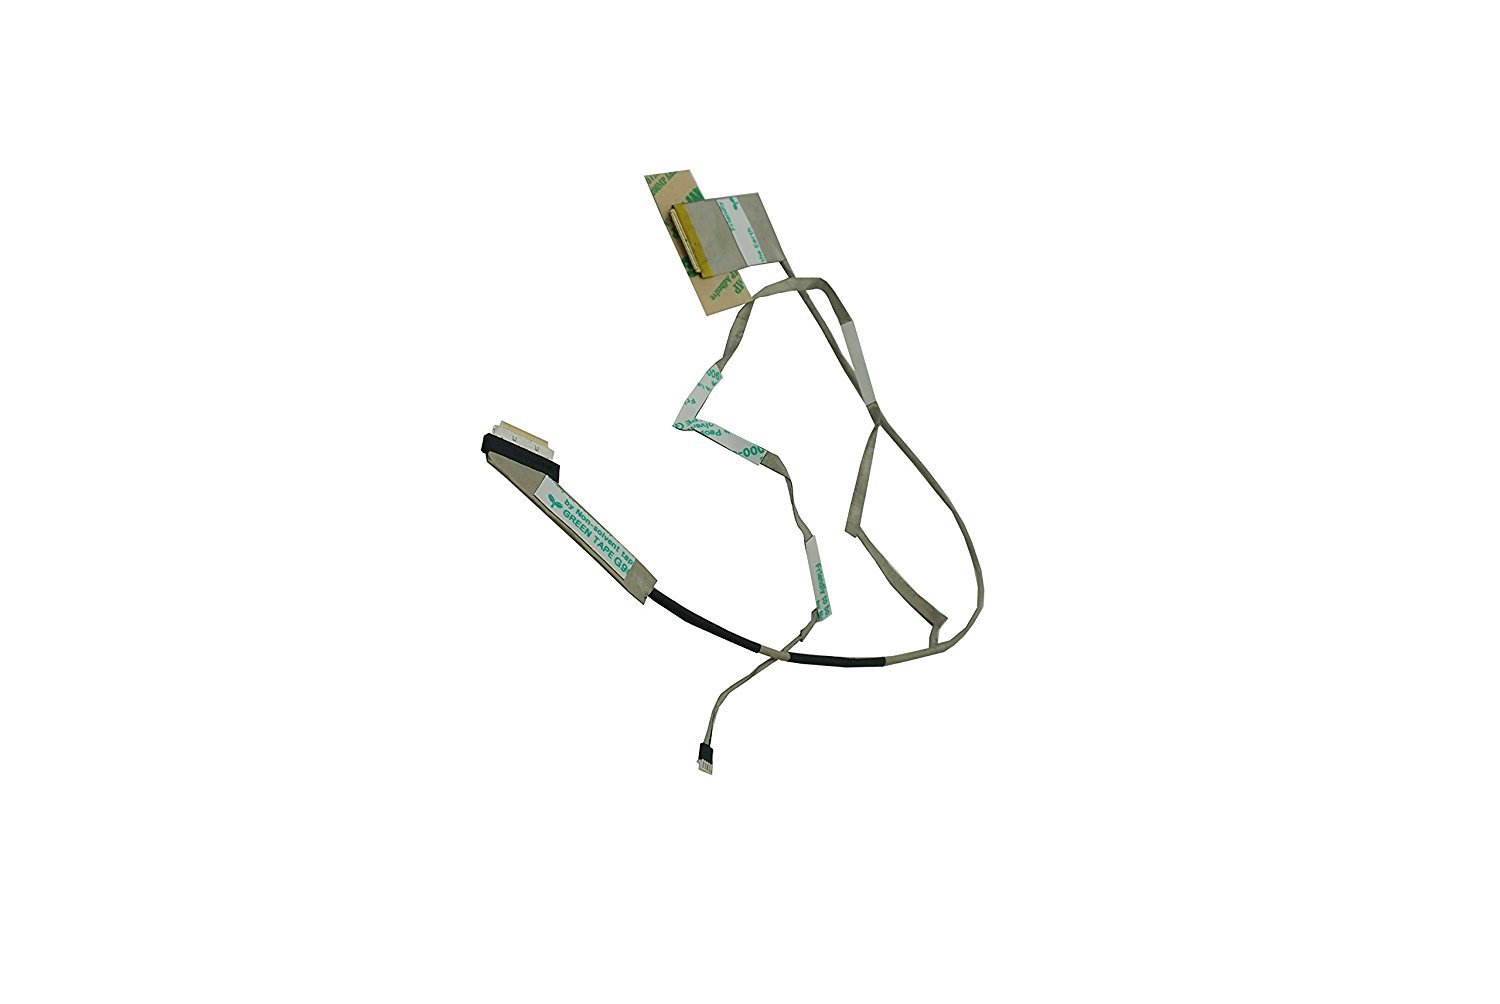 Generic LCD Flex Screen Cable For IBM Lenovo G485 G580 G585 Series New Notebook Replacement Accessories P/N DC02001ES10